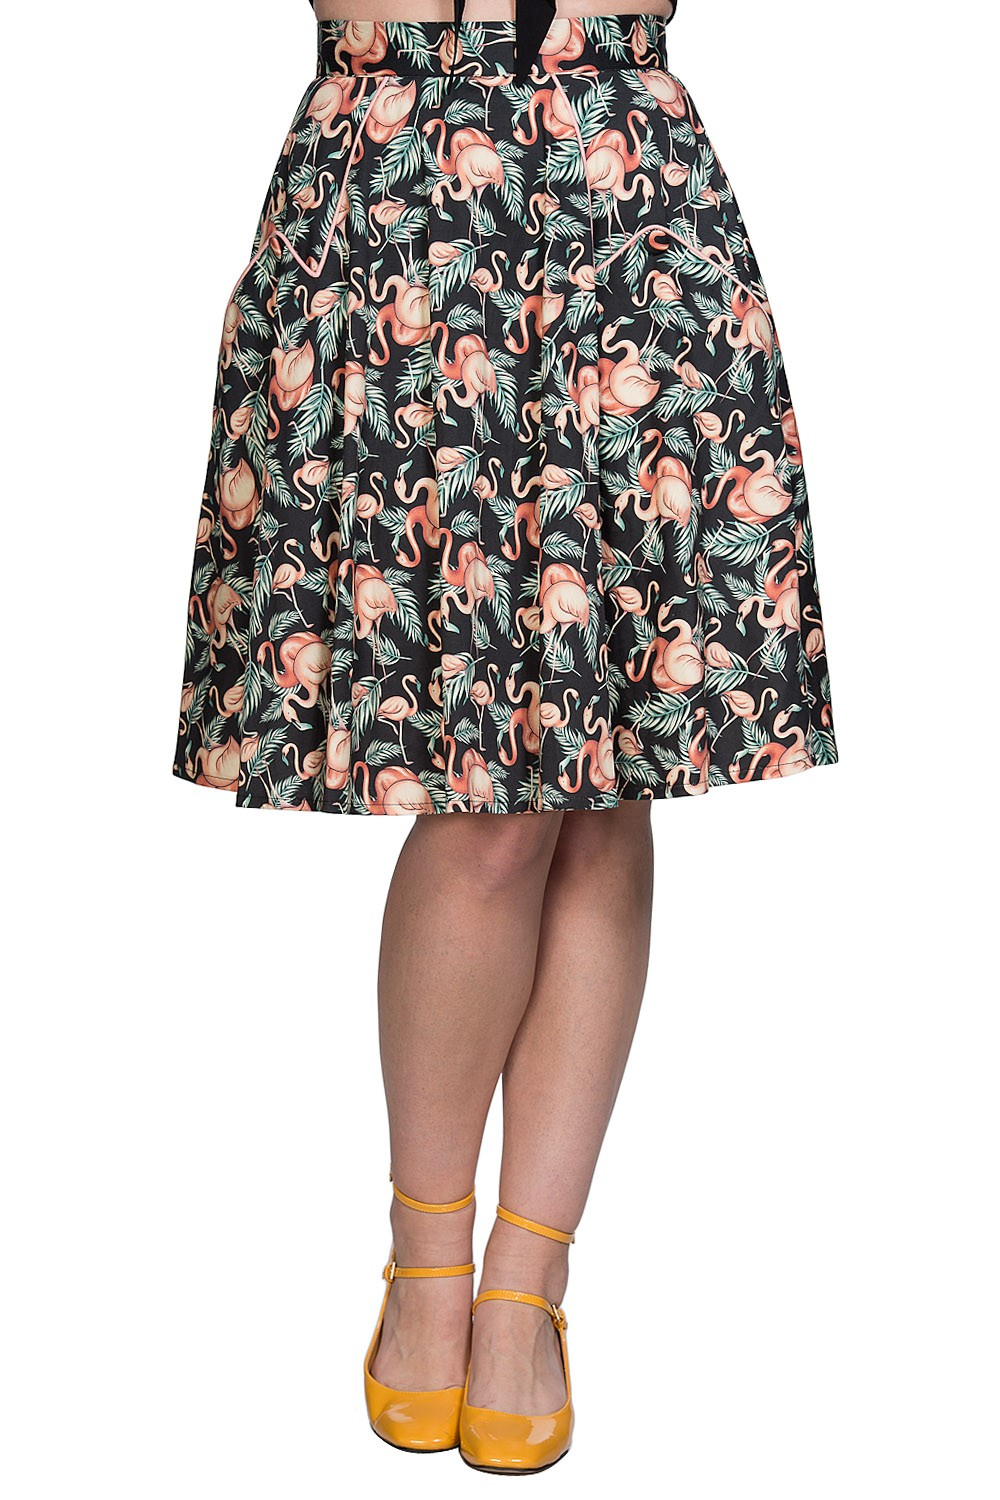 Banned Retro Flamingo Honnie Skirt